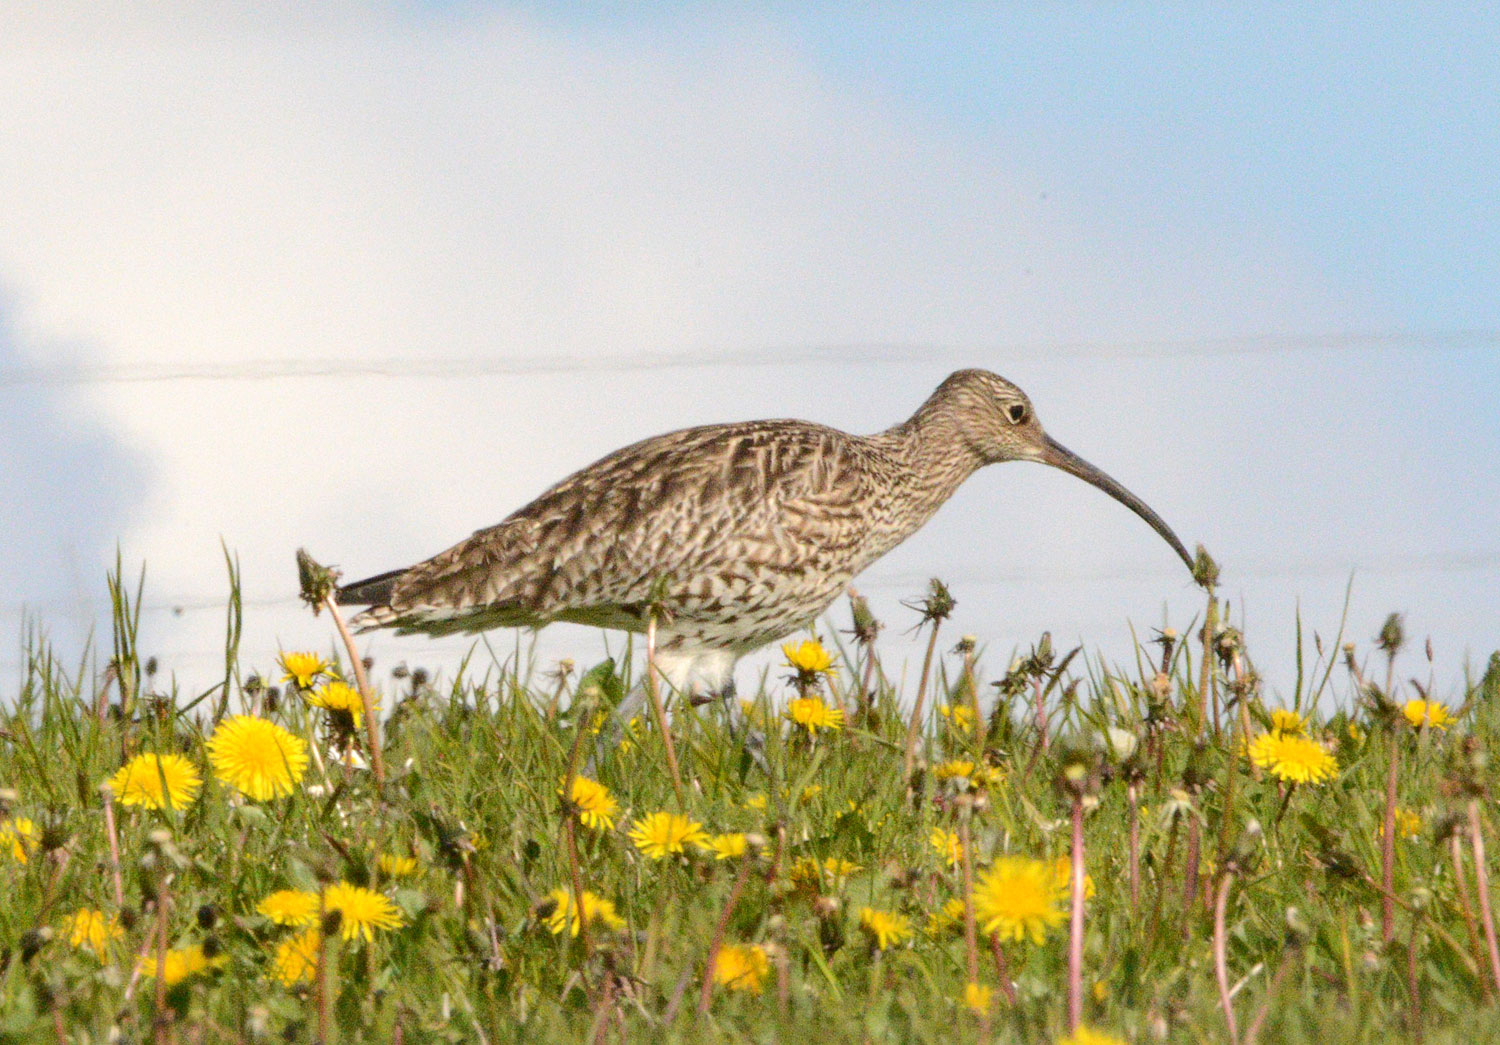 A whaup among the dandelions - a curlew at the Ring of Brodgar.